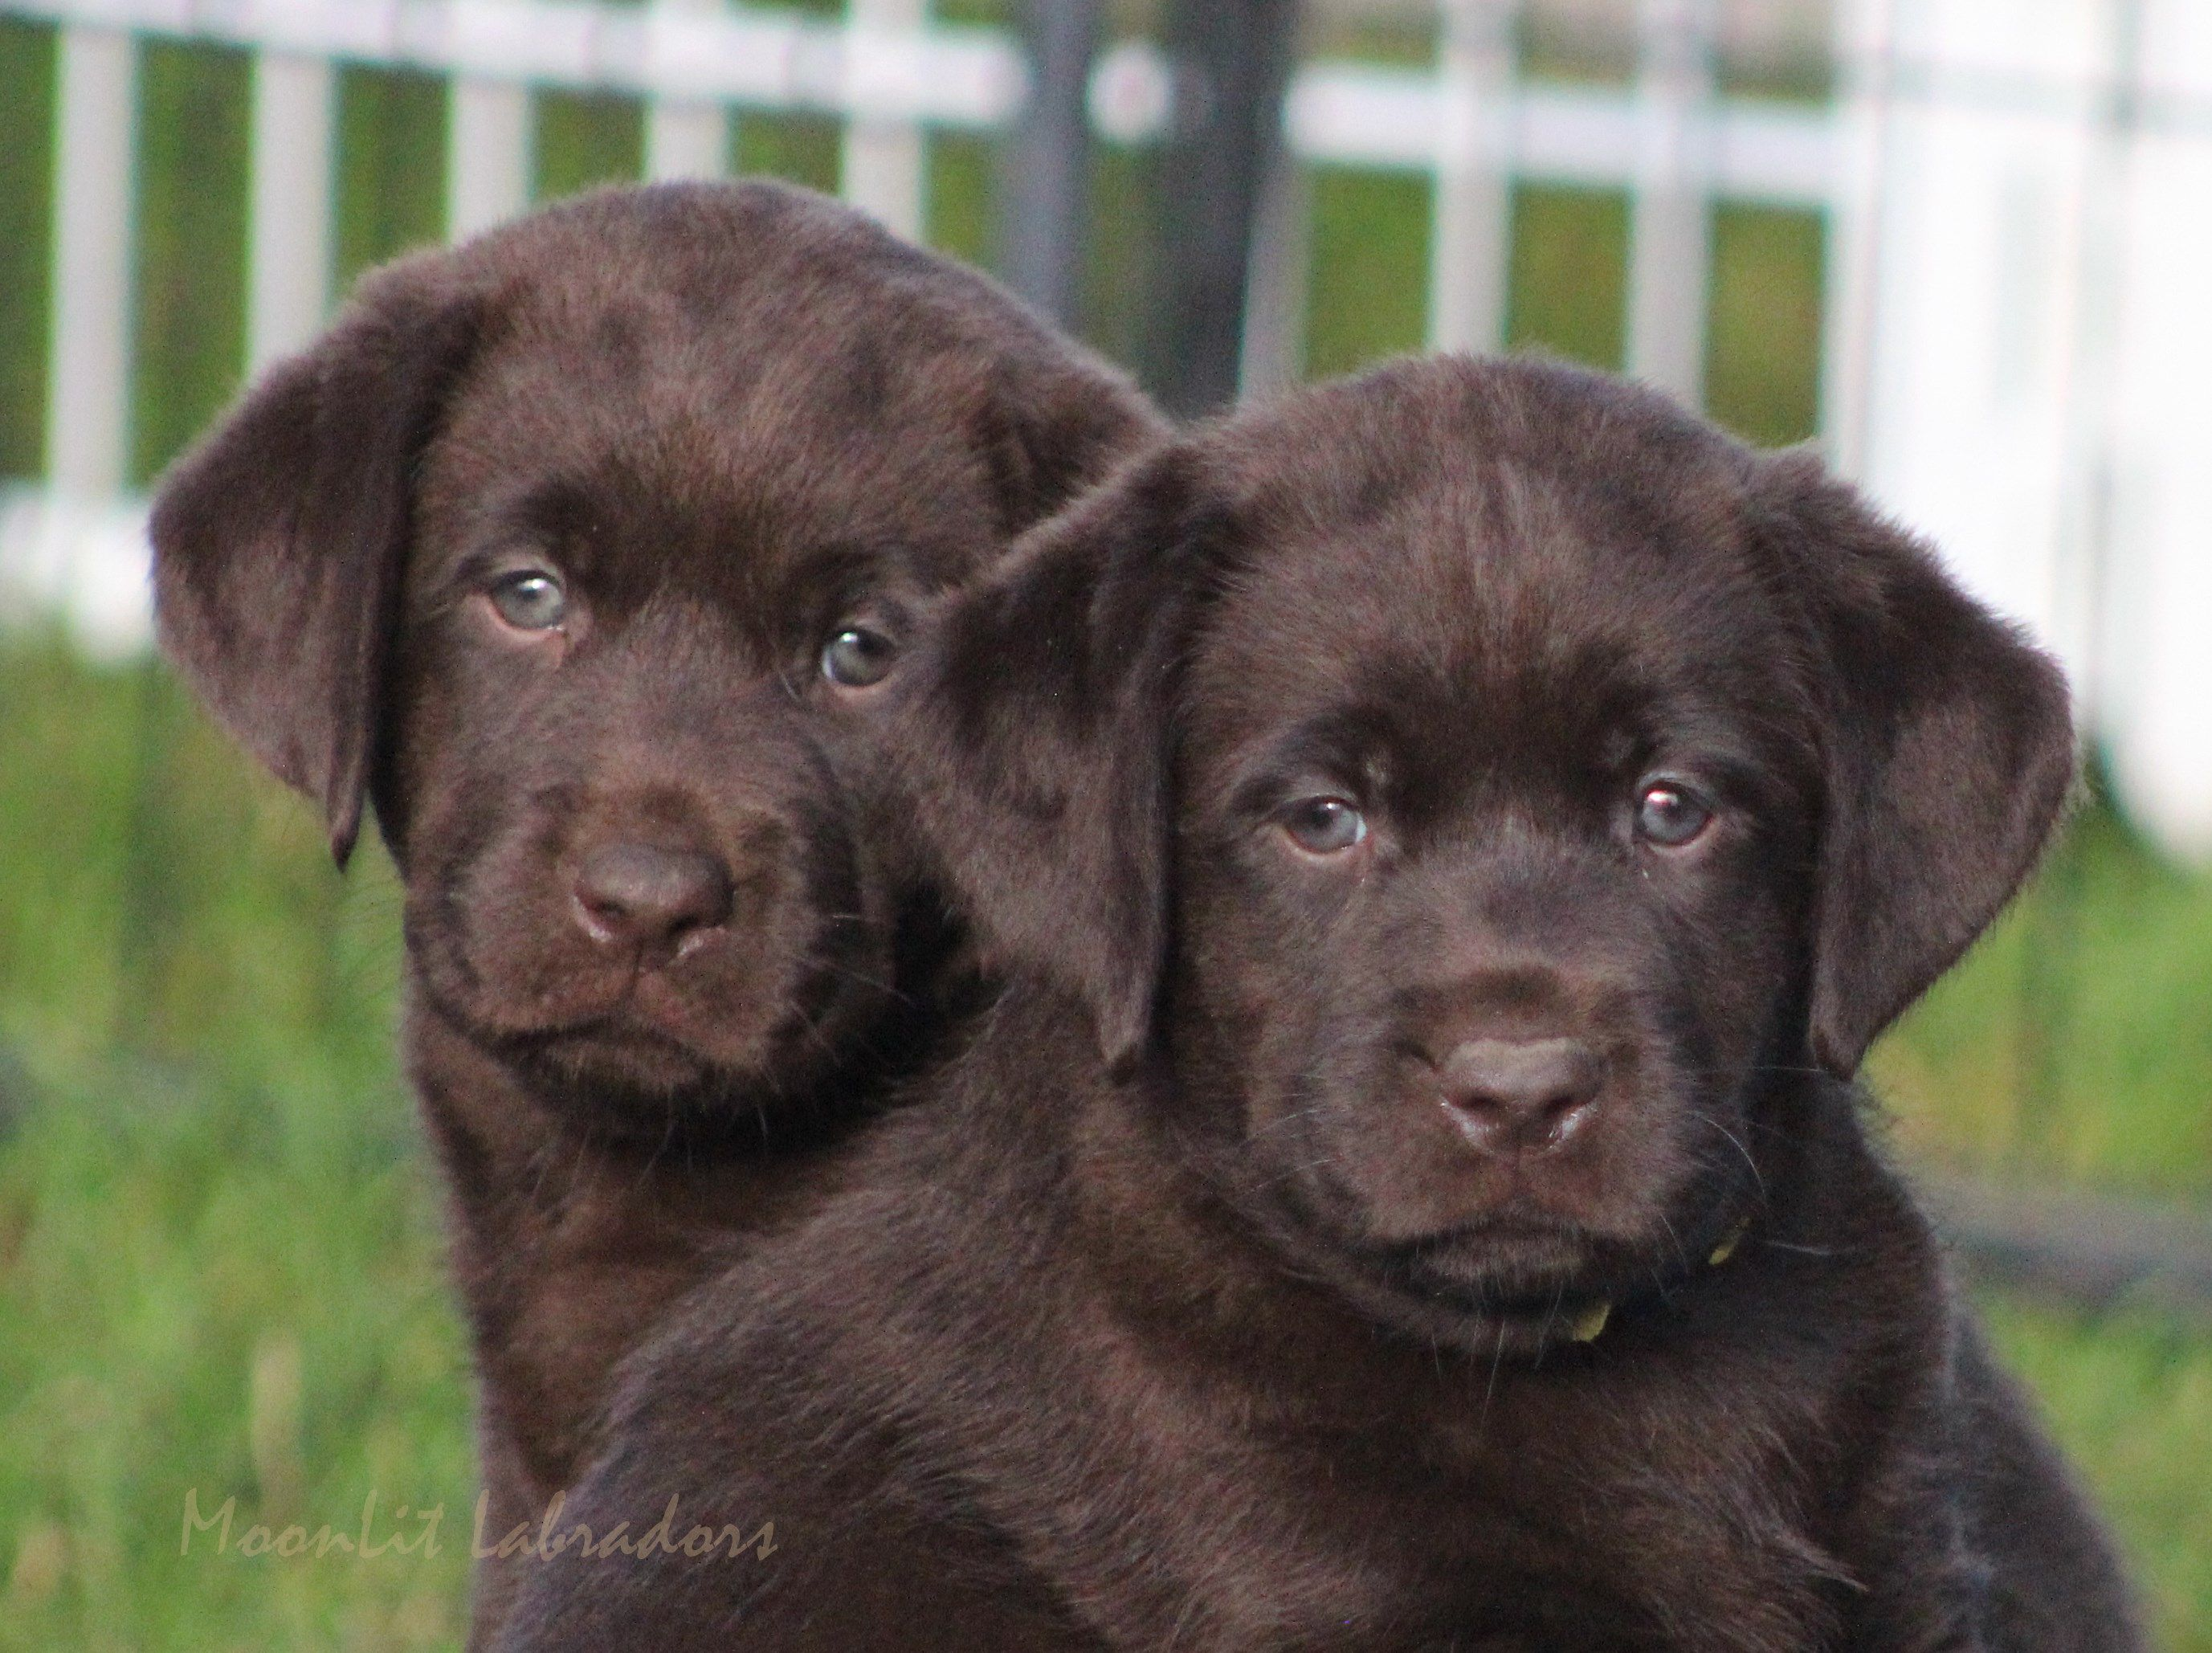 Moonlit Labradors Puppies Available Moonlit Labradors Black Yellow And Chocolate Labradors 716 Labrador Retriever Puppies Labrador Retriever Labrador